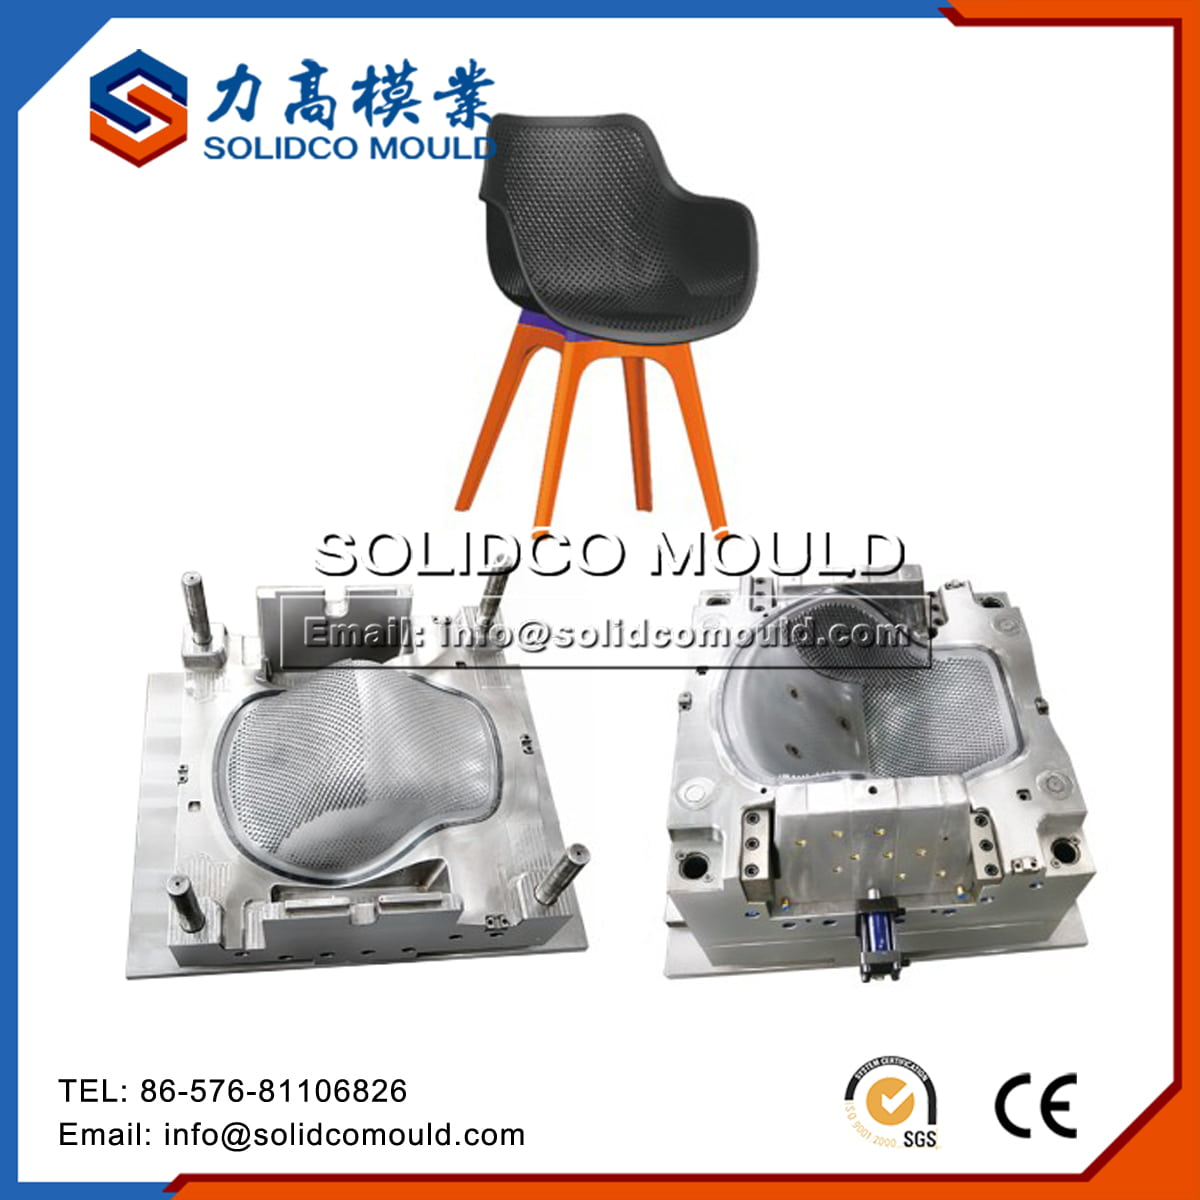 Household Plastic Armless Chair Mould